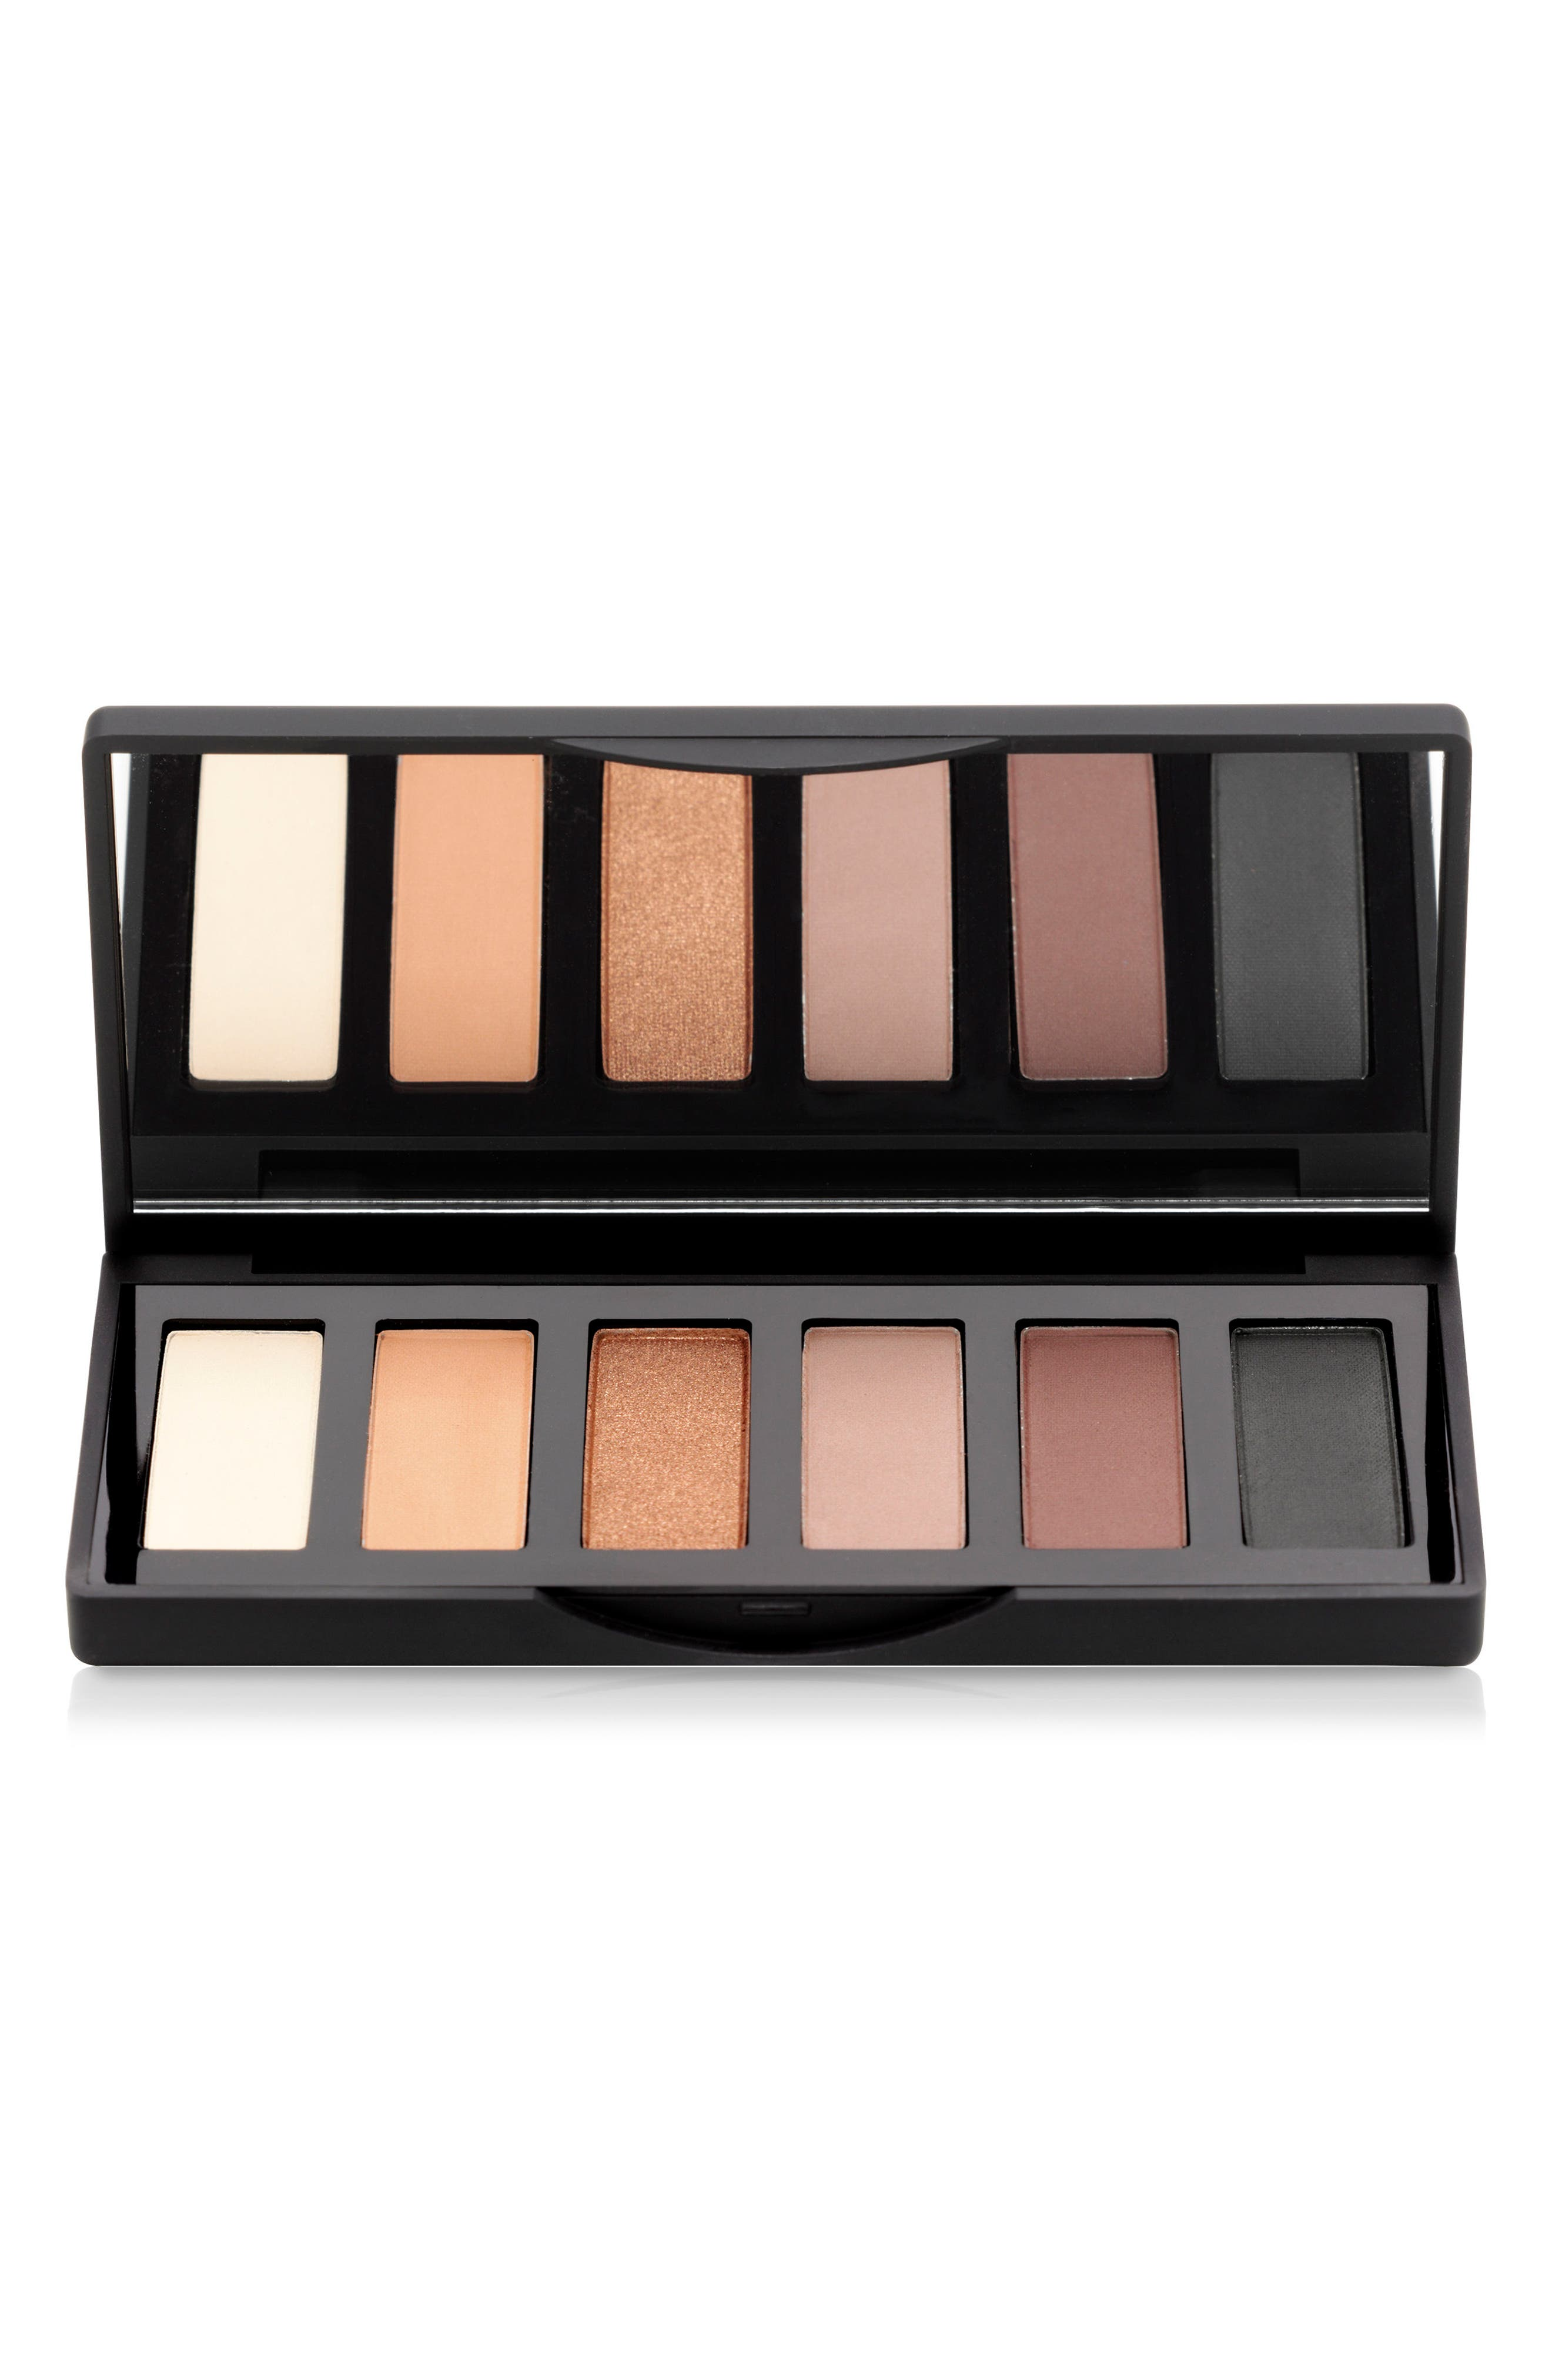 Main Image - SPACE.NK.apothecary Rodial Smoky Eyeshadow Palette